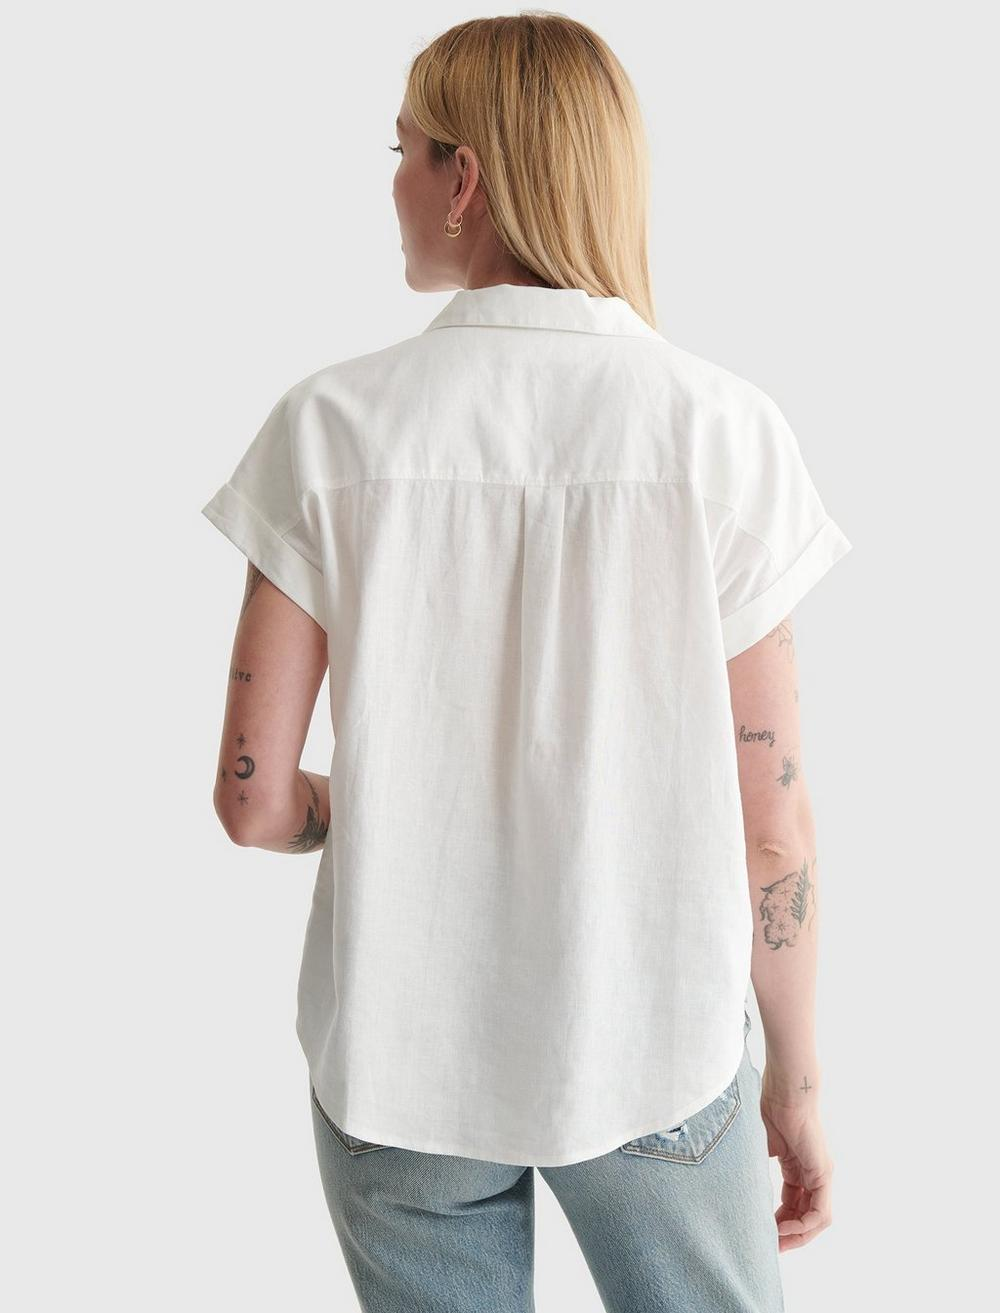 TIE-FRONT SHORT SLEEVE SHIRT, image 4